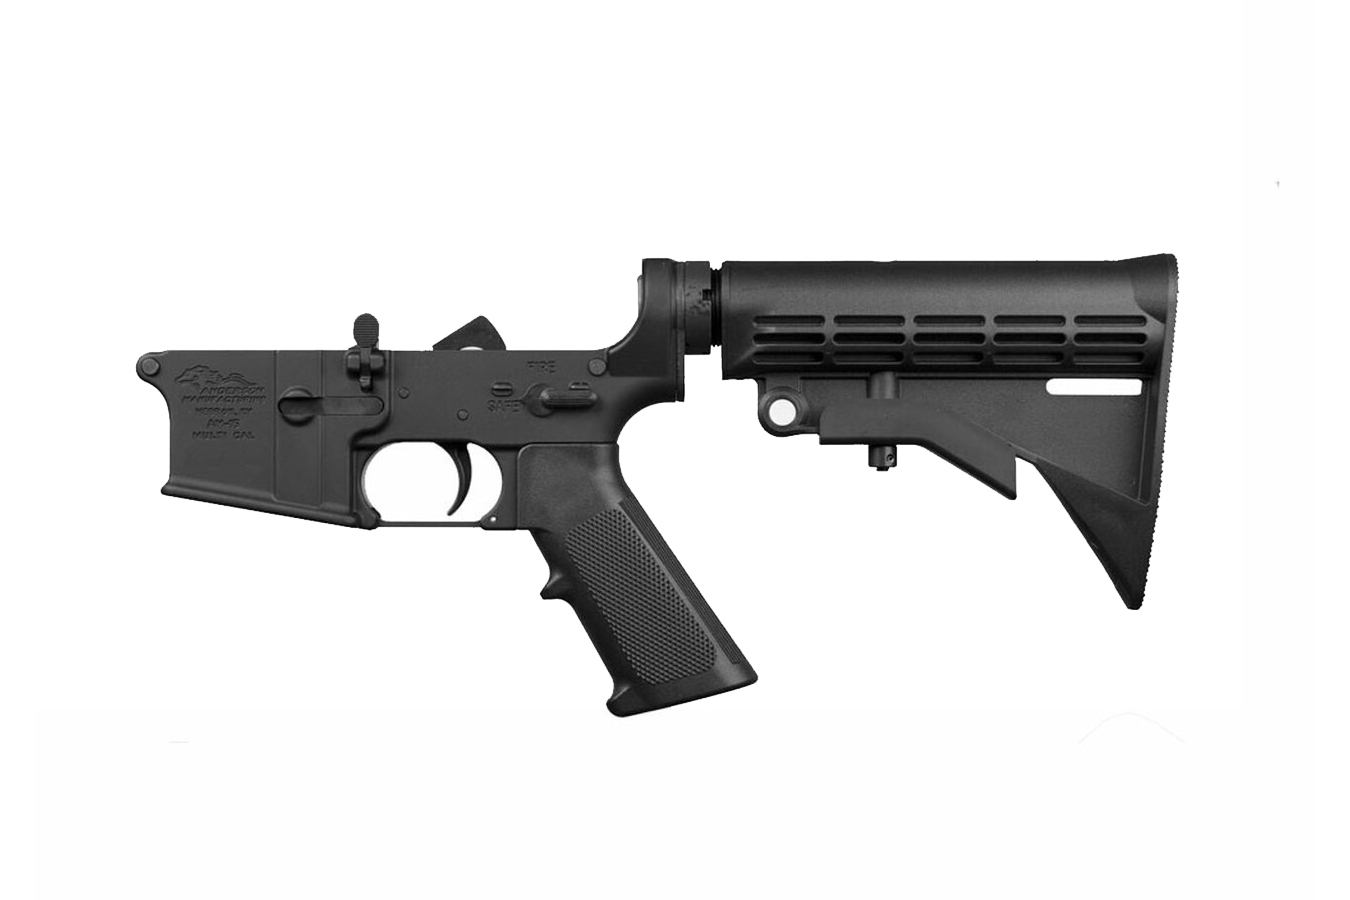 COMPLETE OPEN TRIGGER LOWER 5.56MM